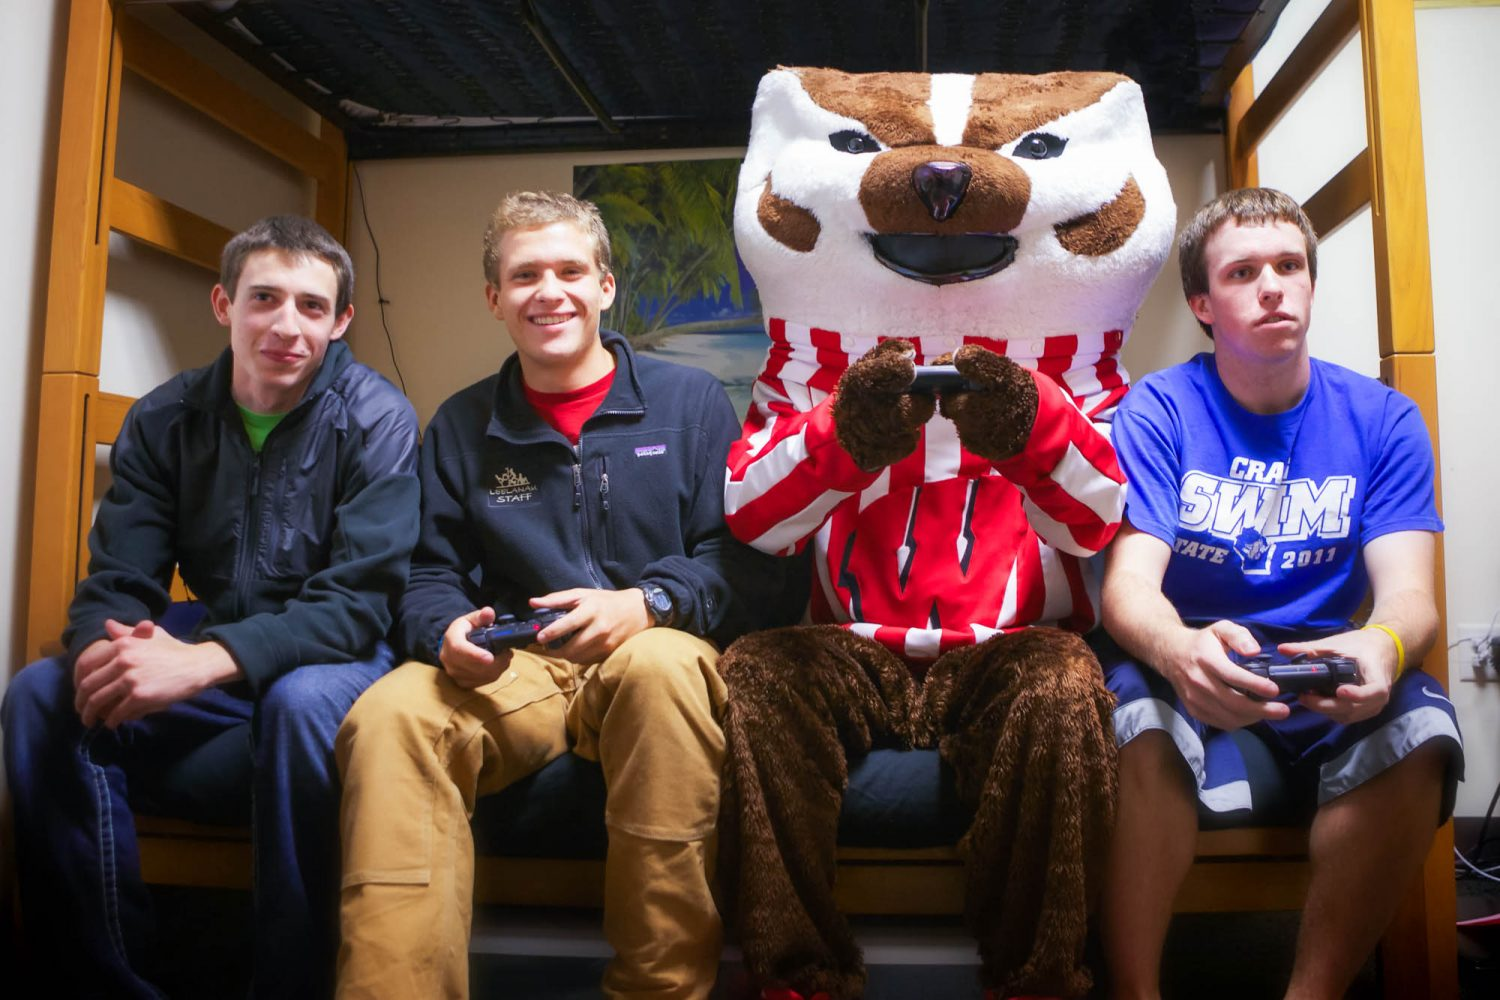 Bucky playing video games with residents